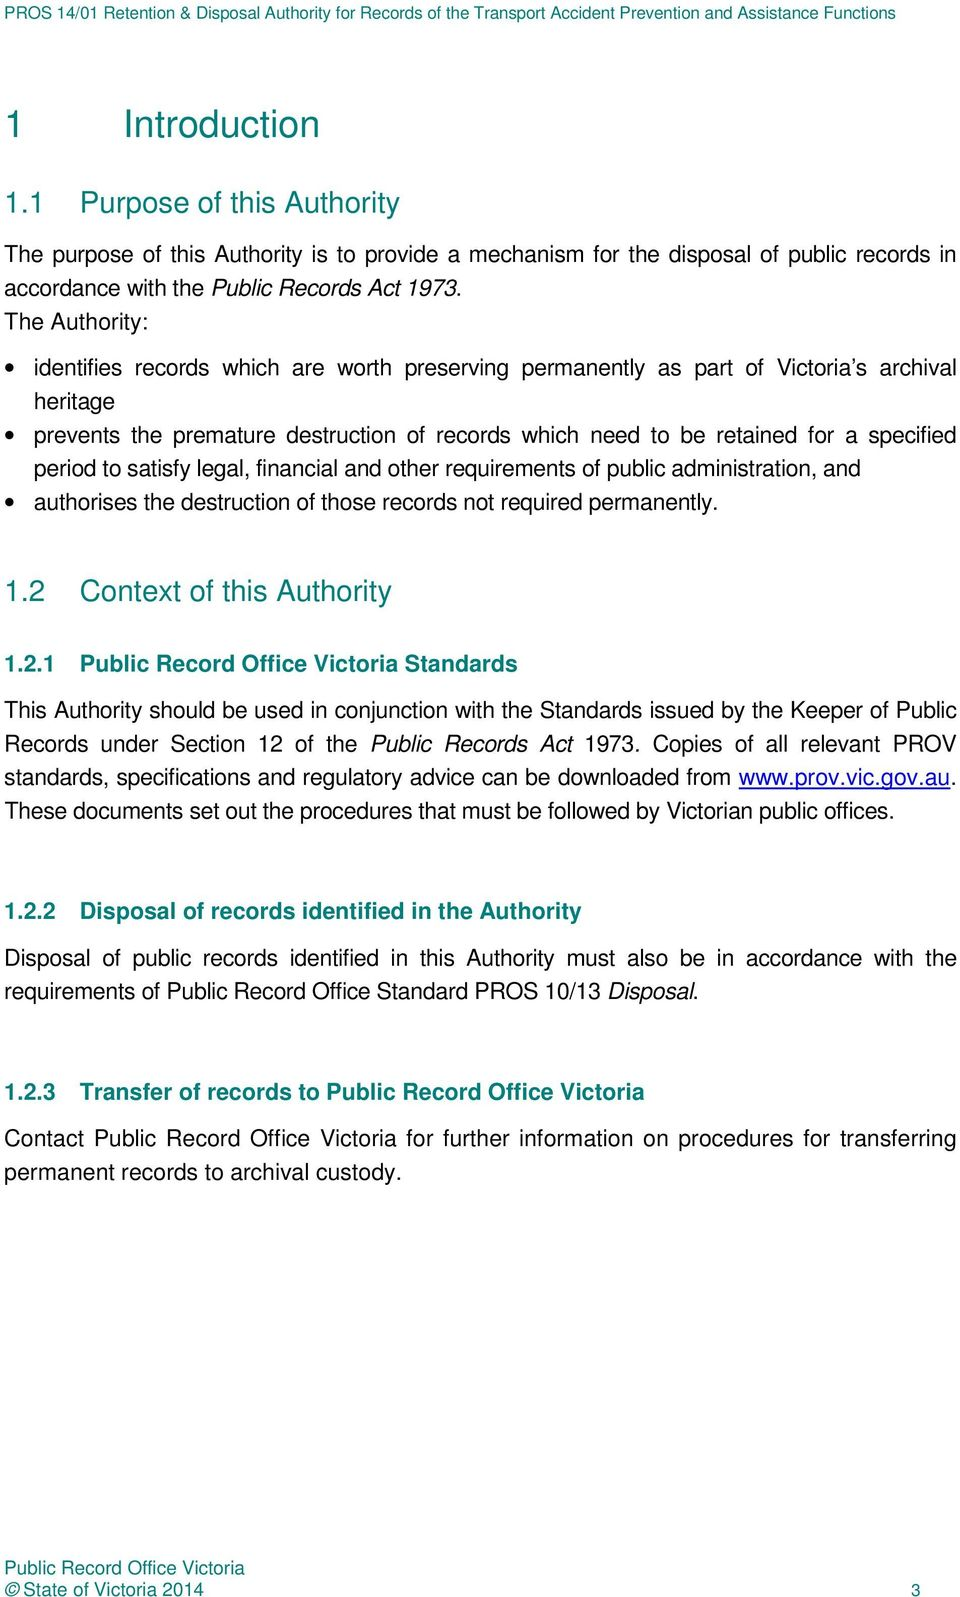 specified period to satisfy legal, financial and other requirements of public administration, and authorises the destruction of those records not required permanently. 1.2 Context of this Authority 1.